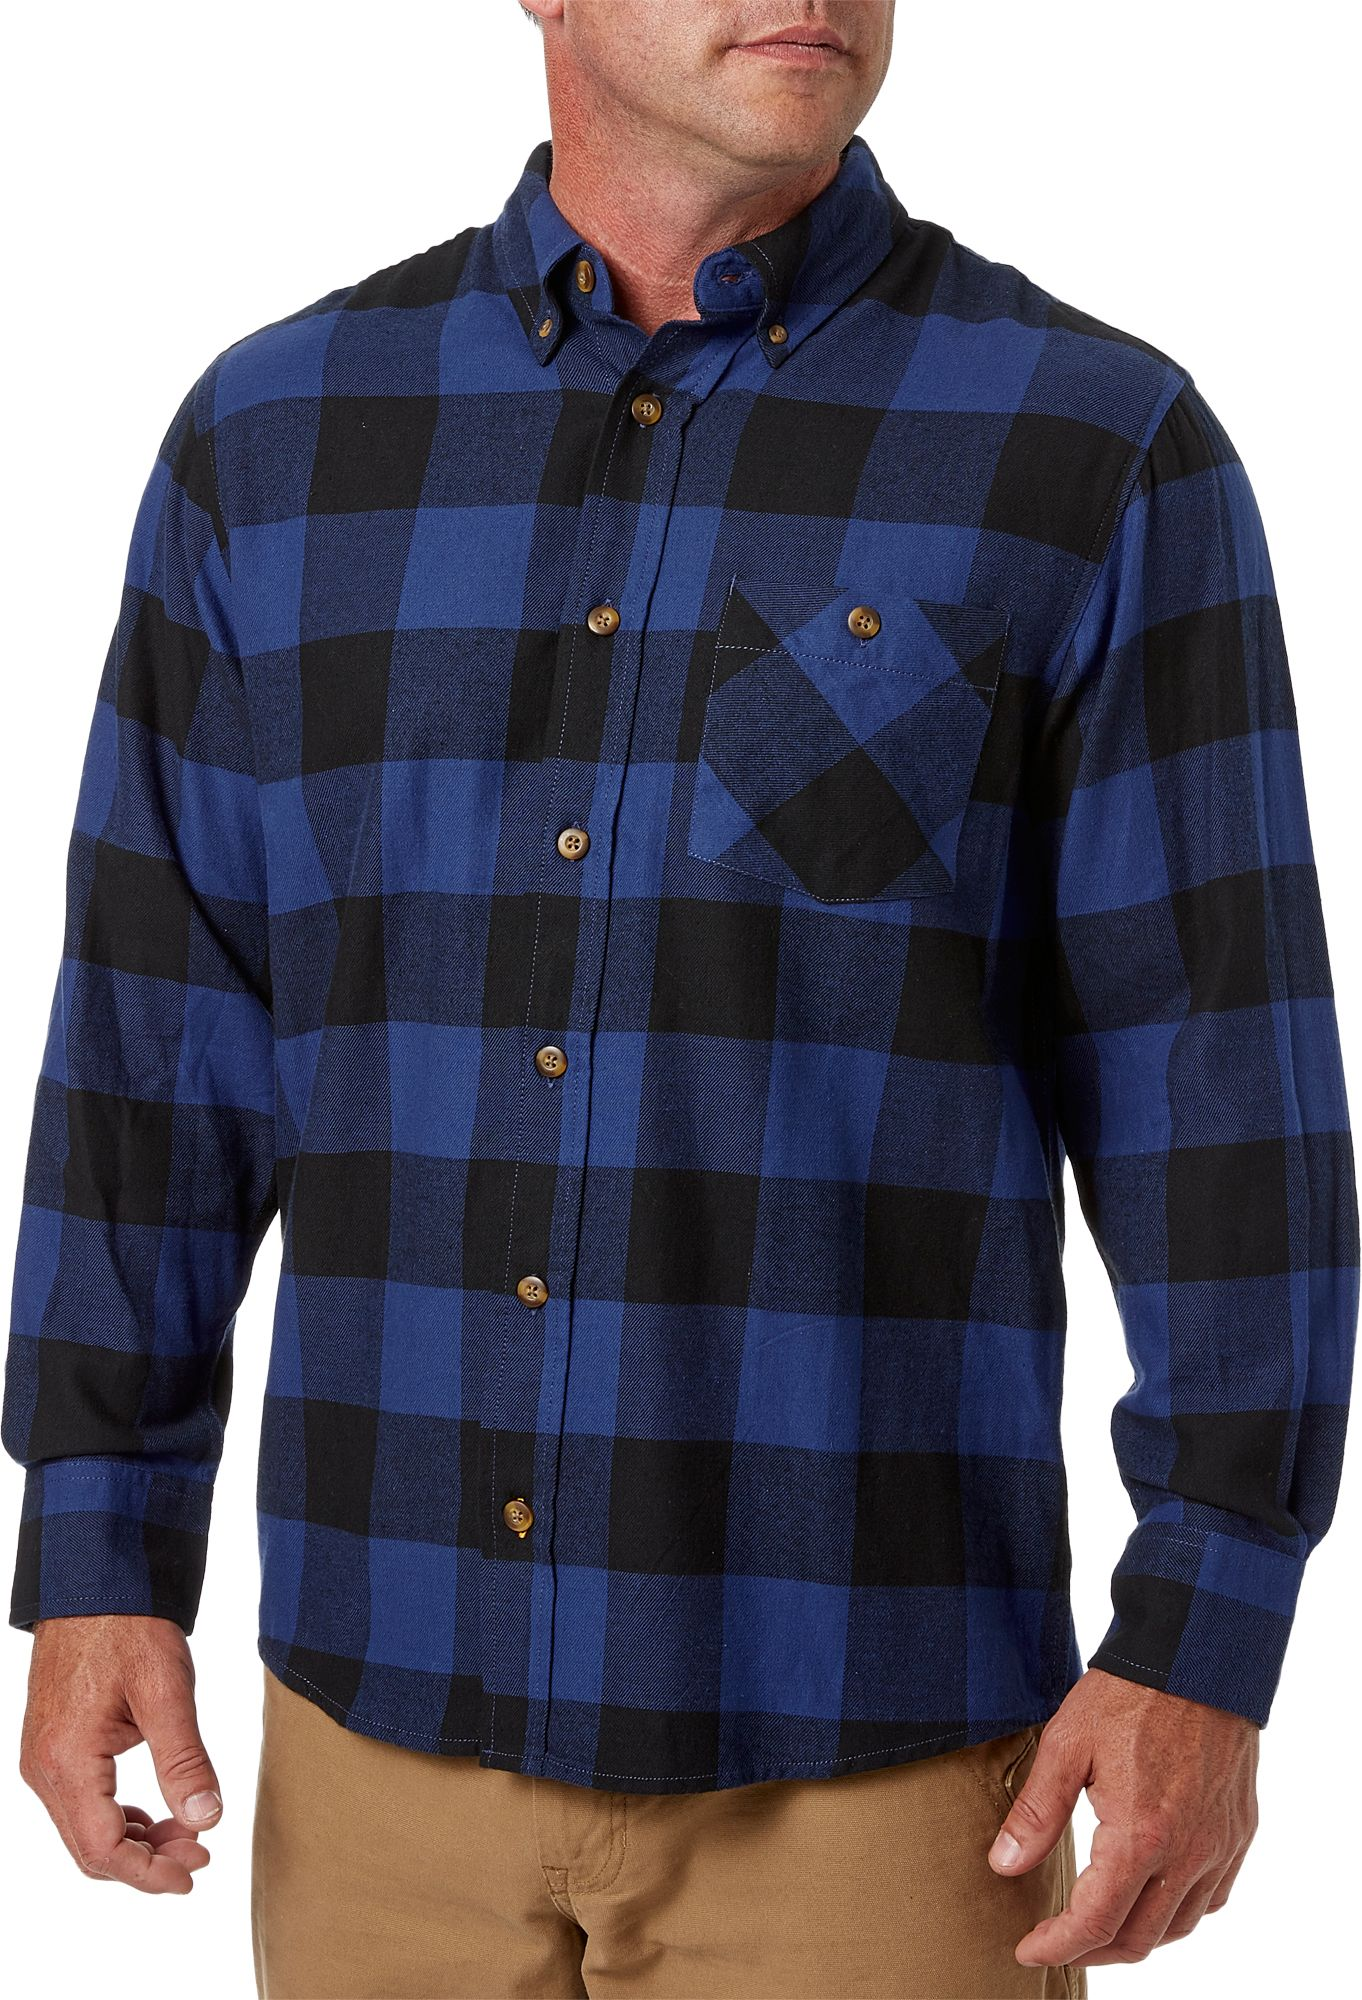 Field & Stream Men's Classic Lightweight Flannel Long Sleeve Shirt by Field & Stream